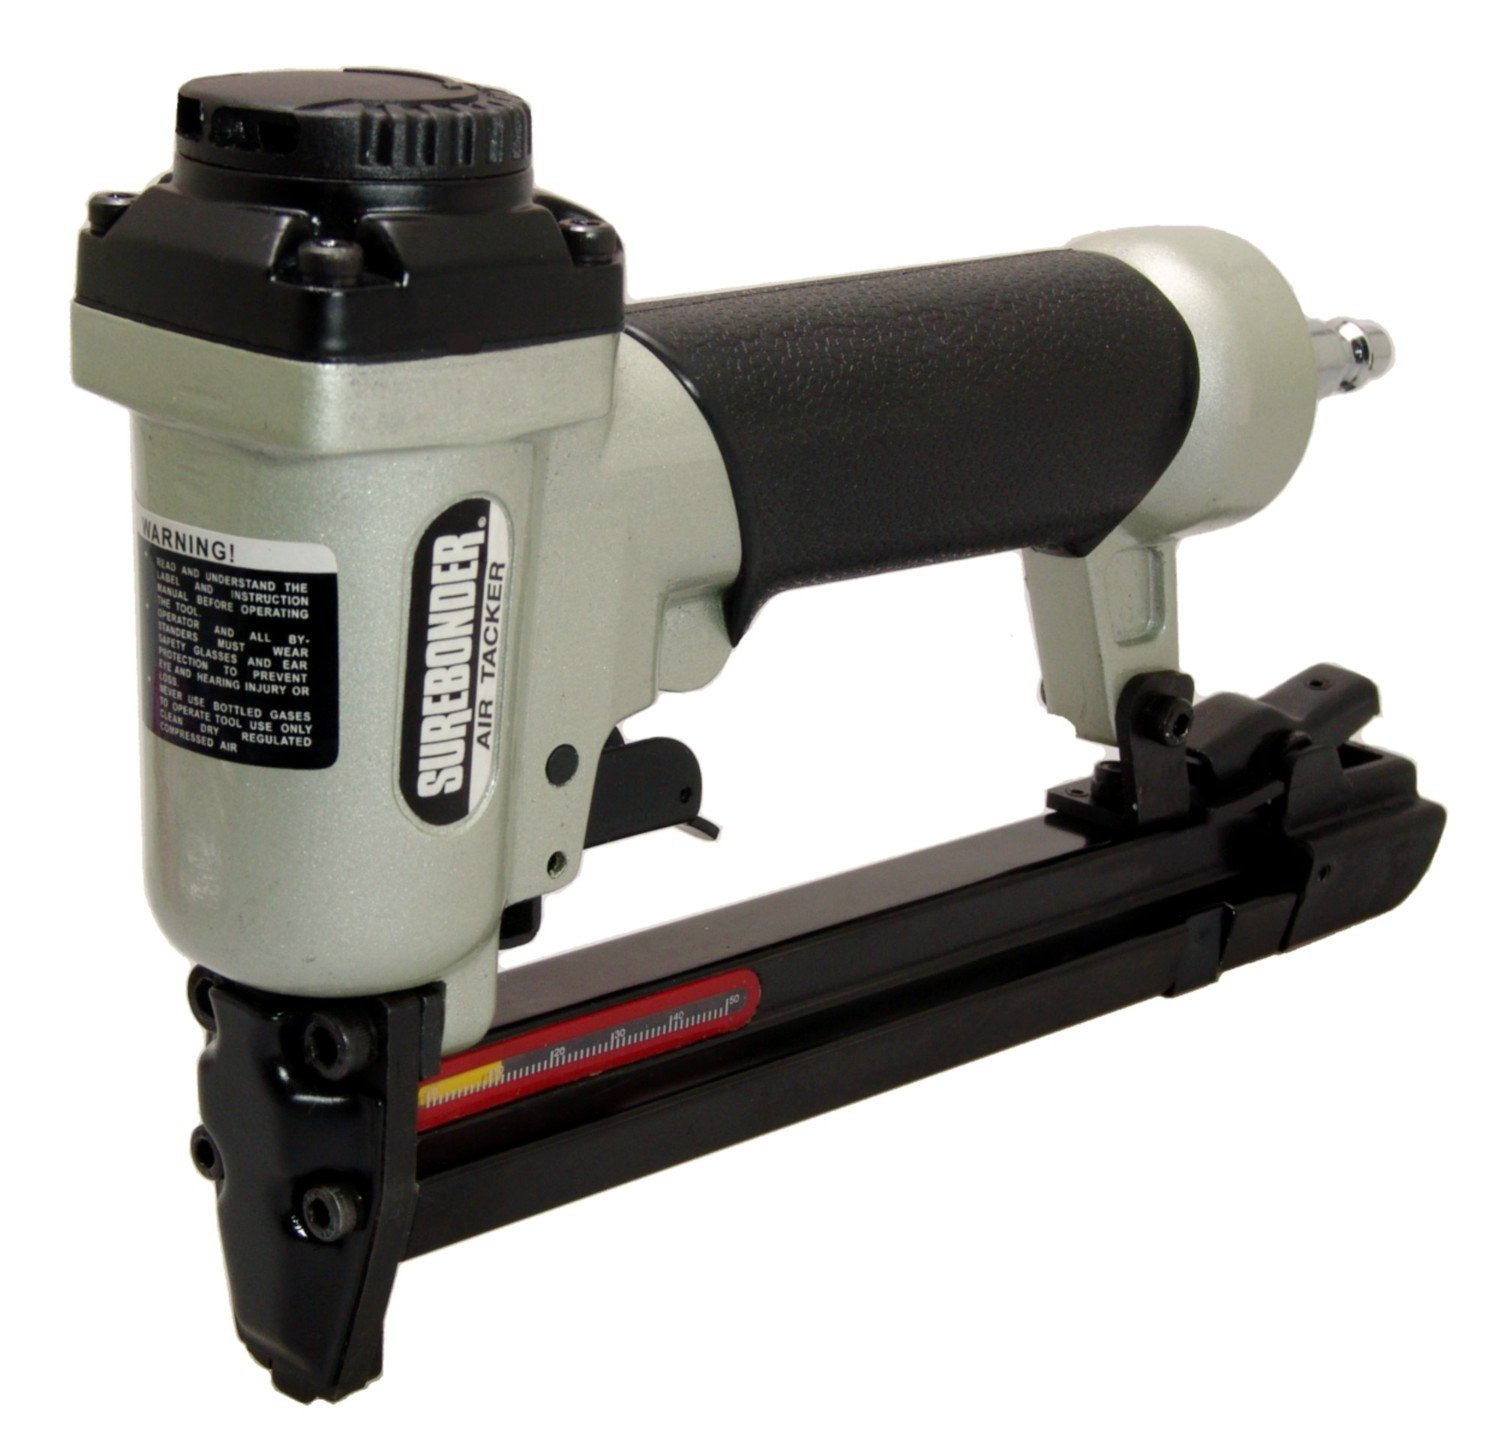 9600WB-R Pneumatic Staple Gun-Use with Arrow T50 Staples, Stanley TRA Series Staples (Certified Refurbished)